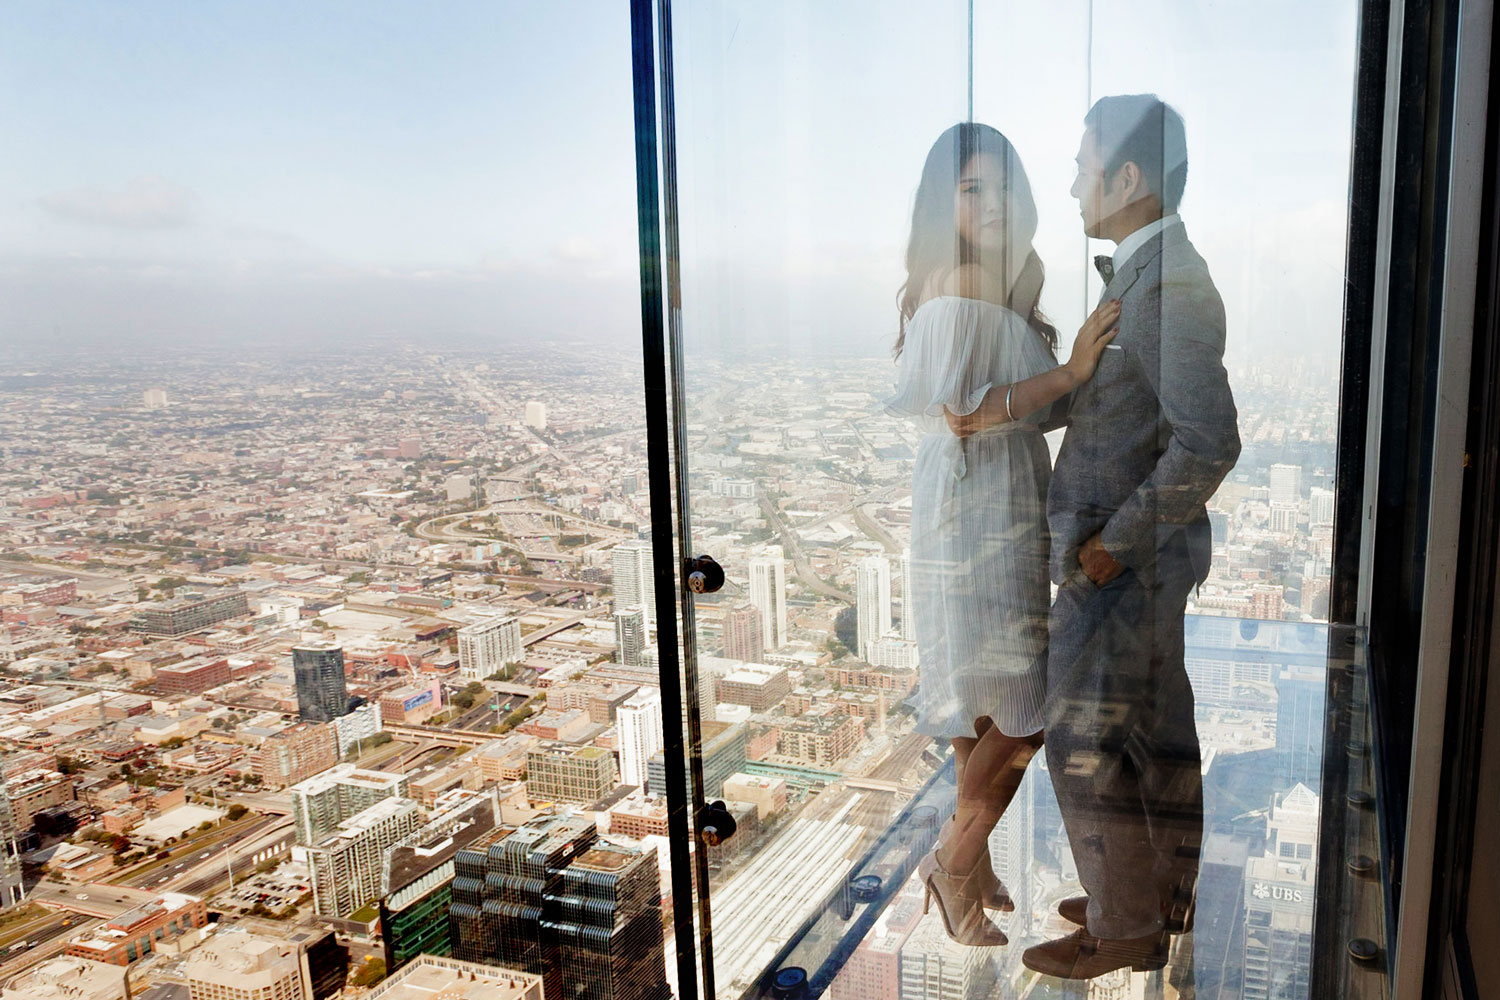 Engagement shoot in Chicago e-session sears tower willis tower observation deck view of city